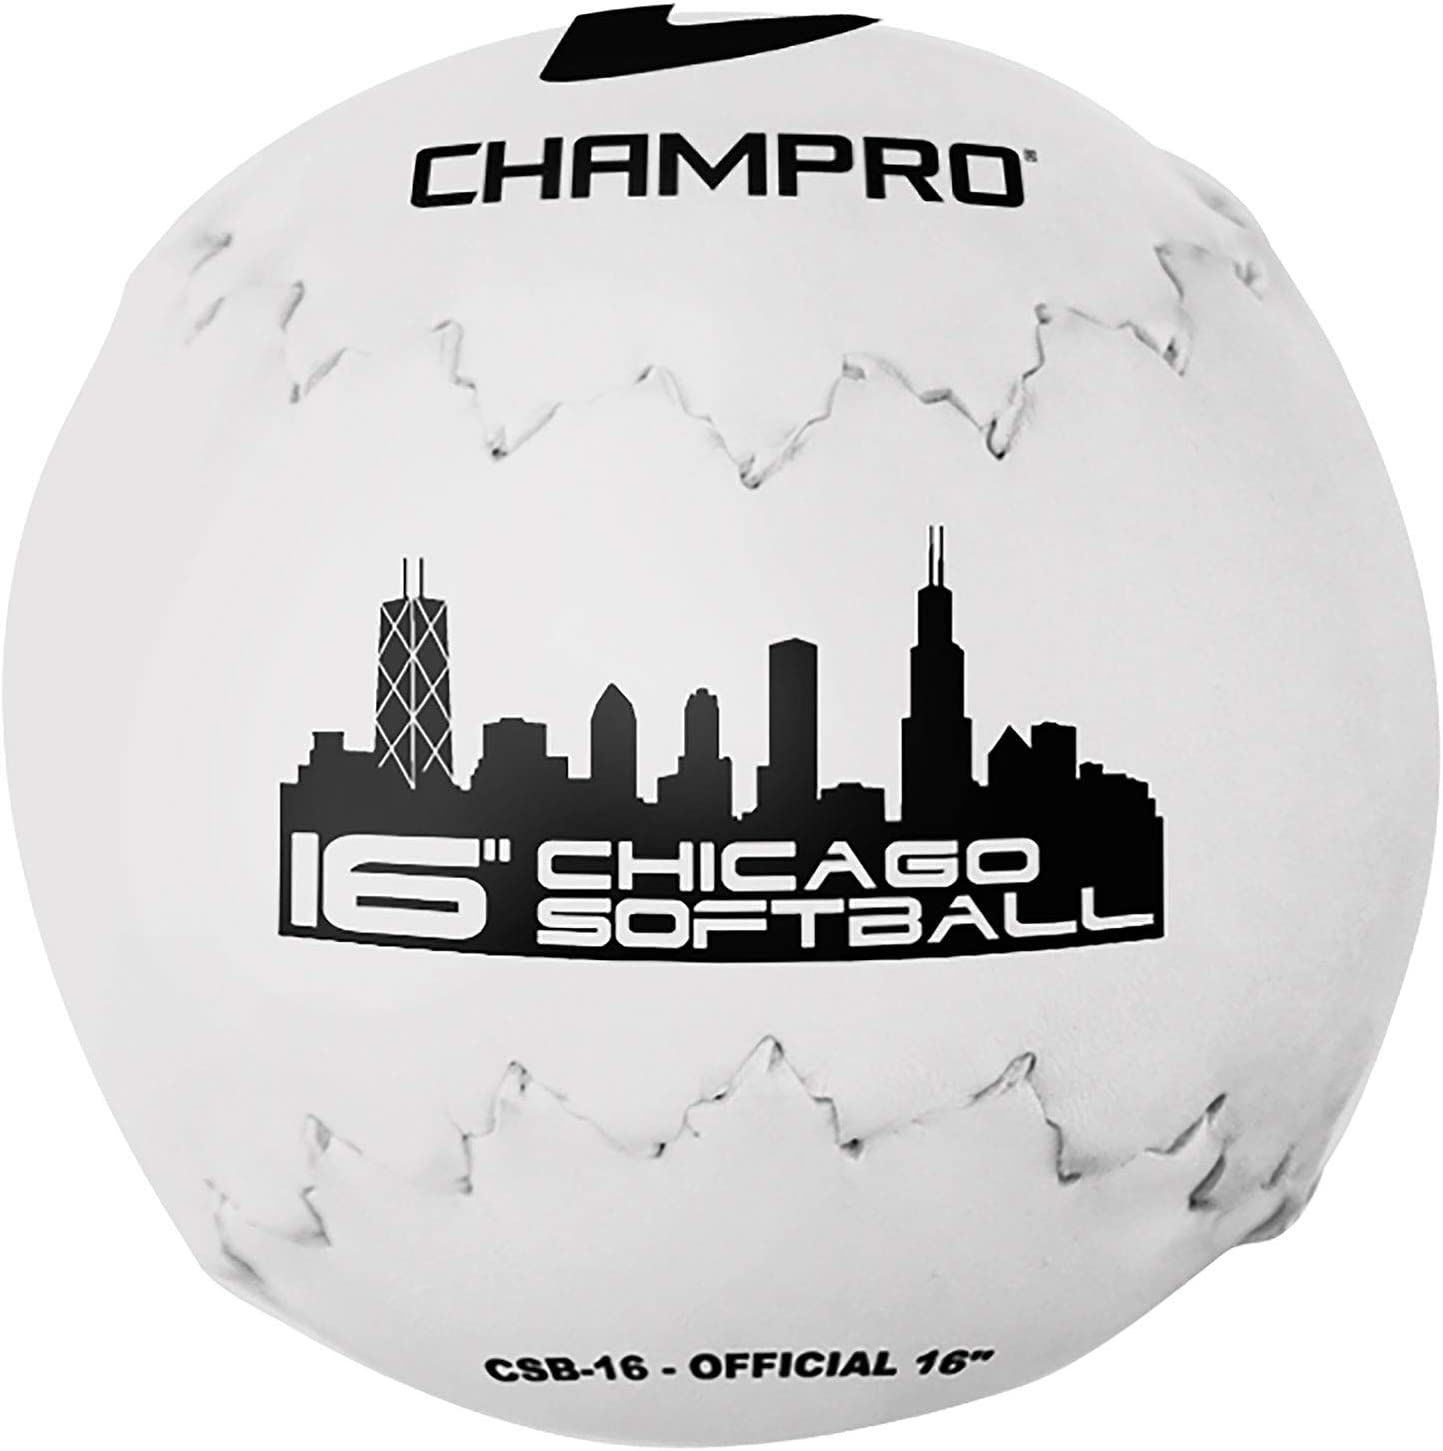 Champro Chicago Softball (White, 16-Inch) : Slow Pitch Softball Bats : Sports & Outdoors